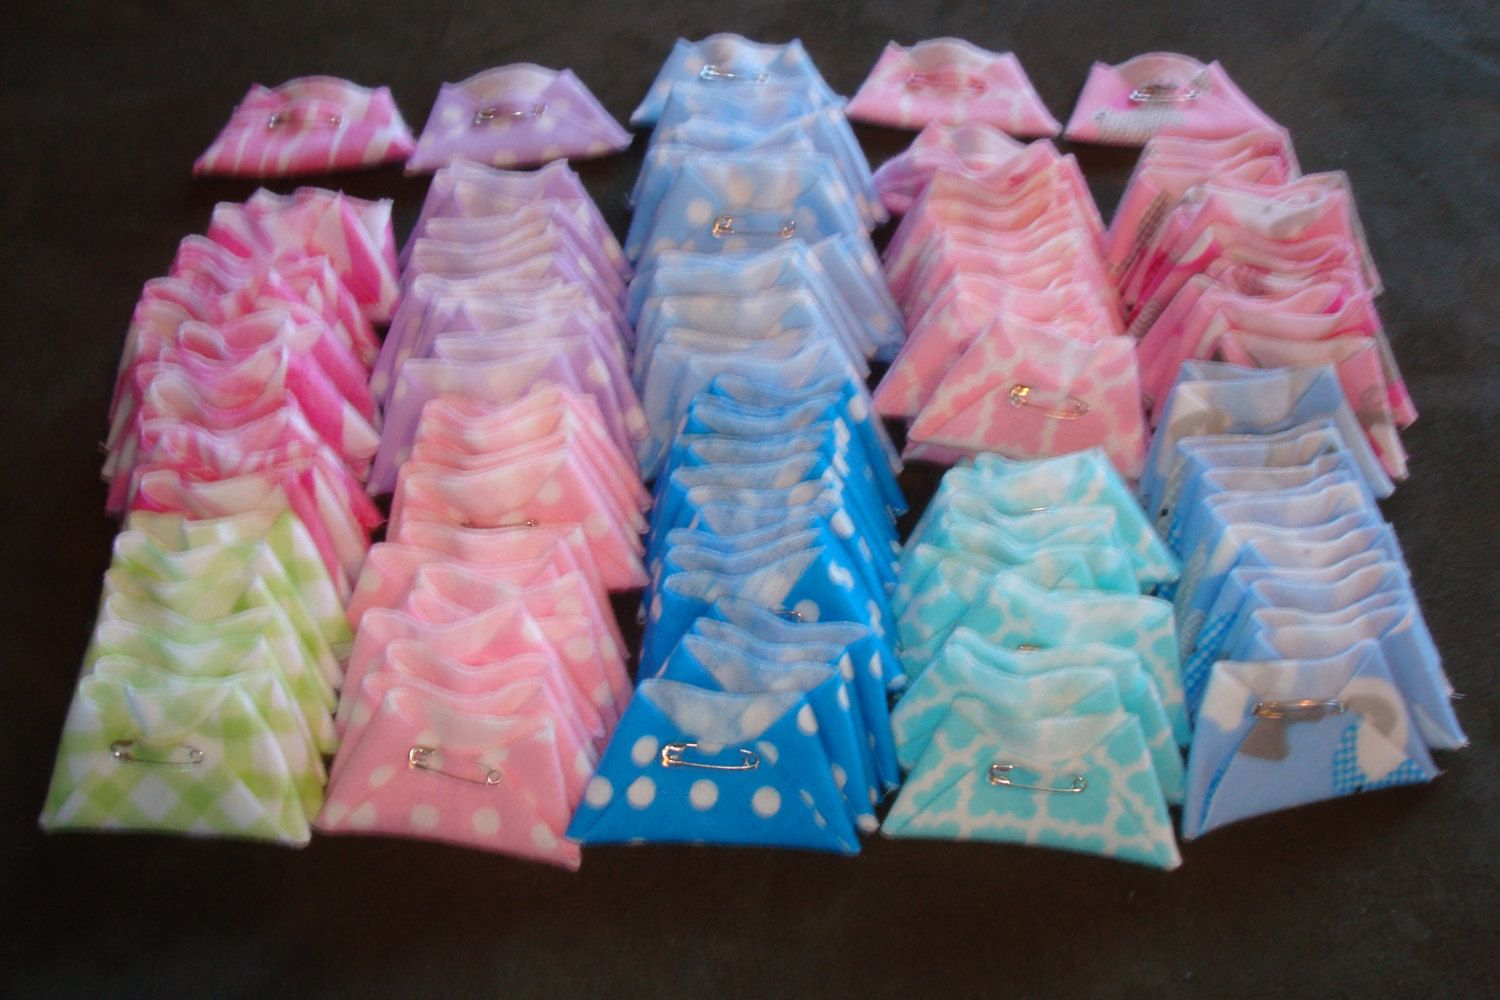 Dirty Diaper Baby Shower GameFavors 25 pieces PICK YOUR COLOR for baby shower; favors; baby shower games